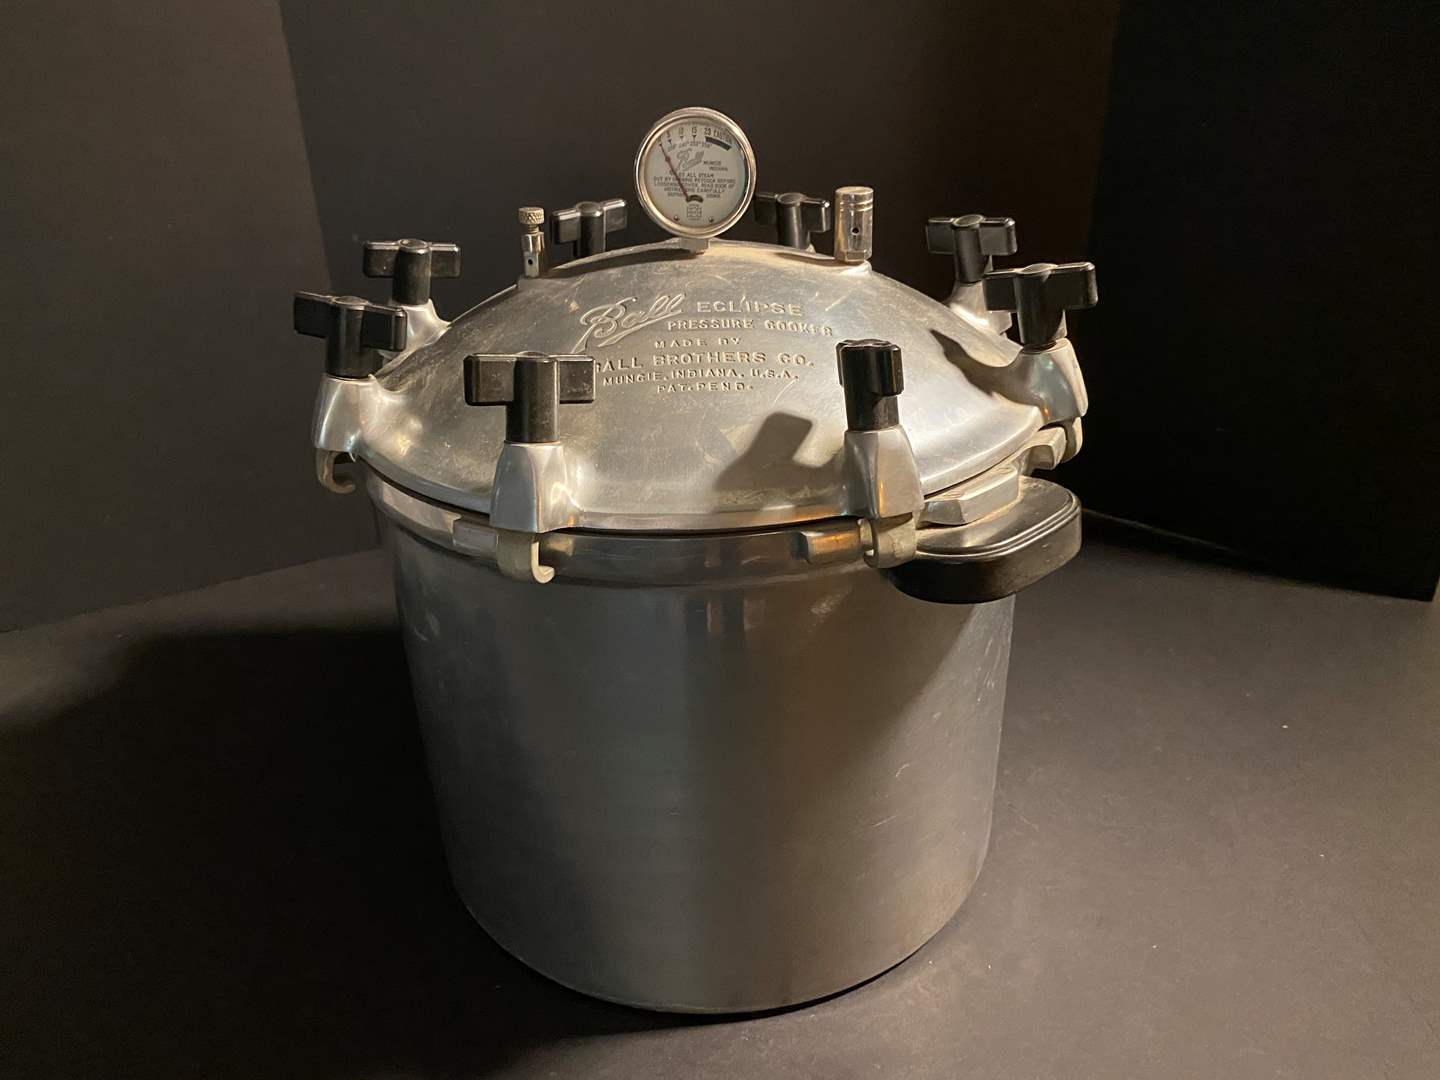 Lot # 160 - Large Vintage Ball Eclipse Pressure Cooker (main image)